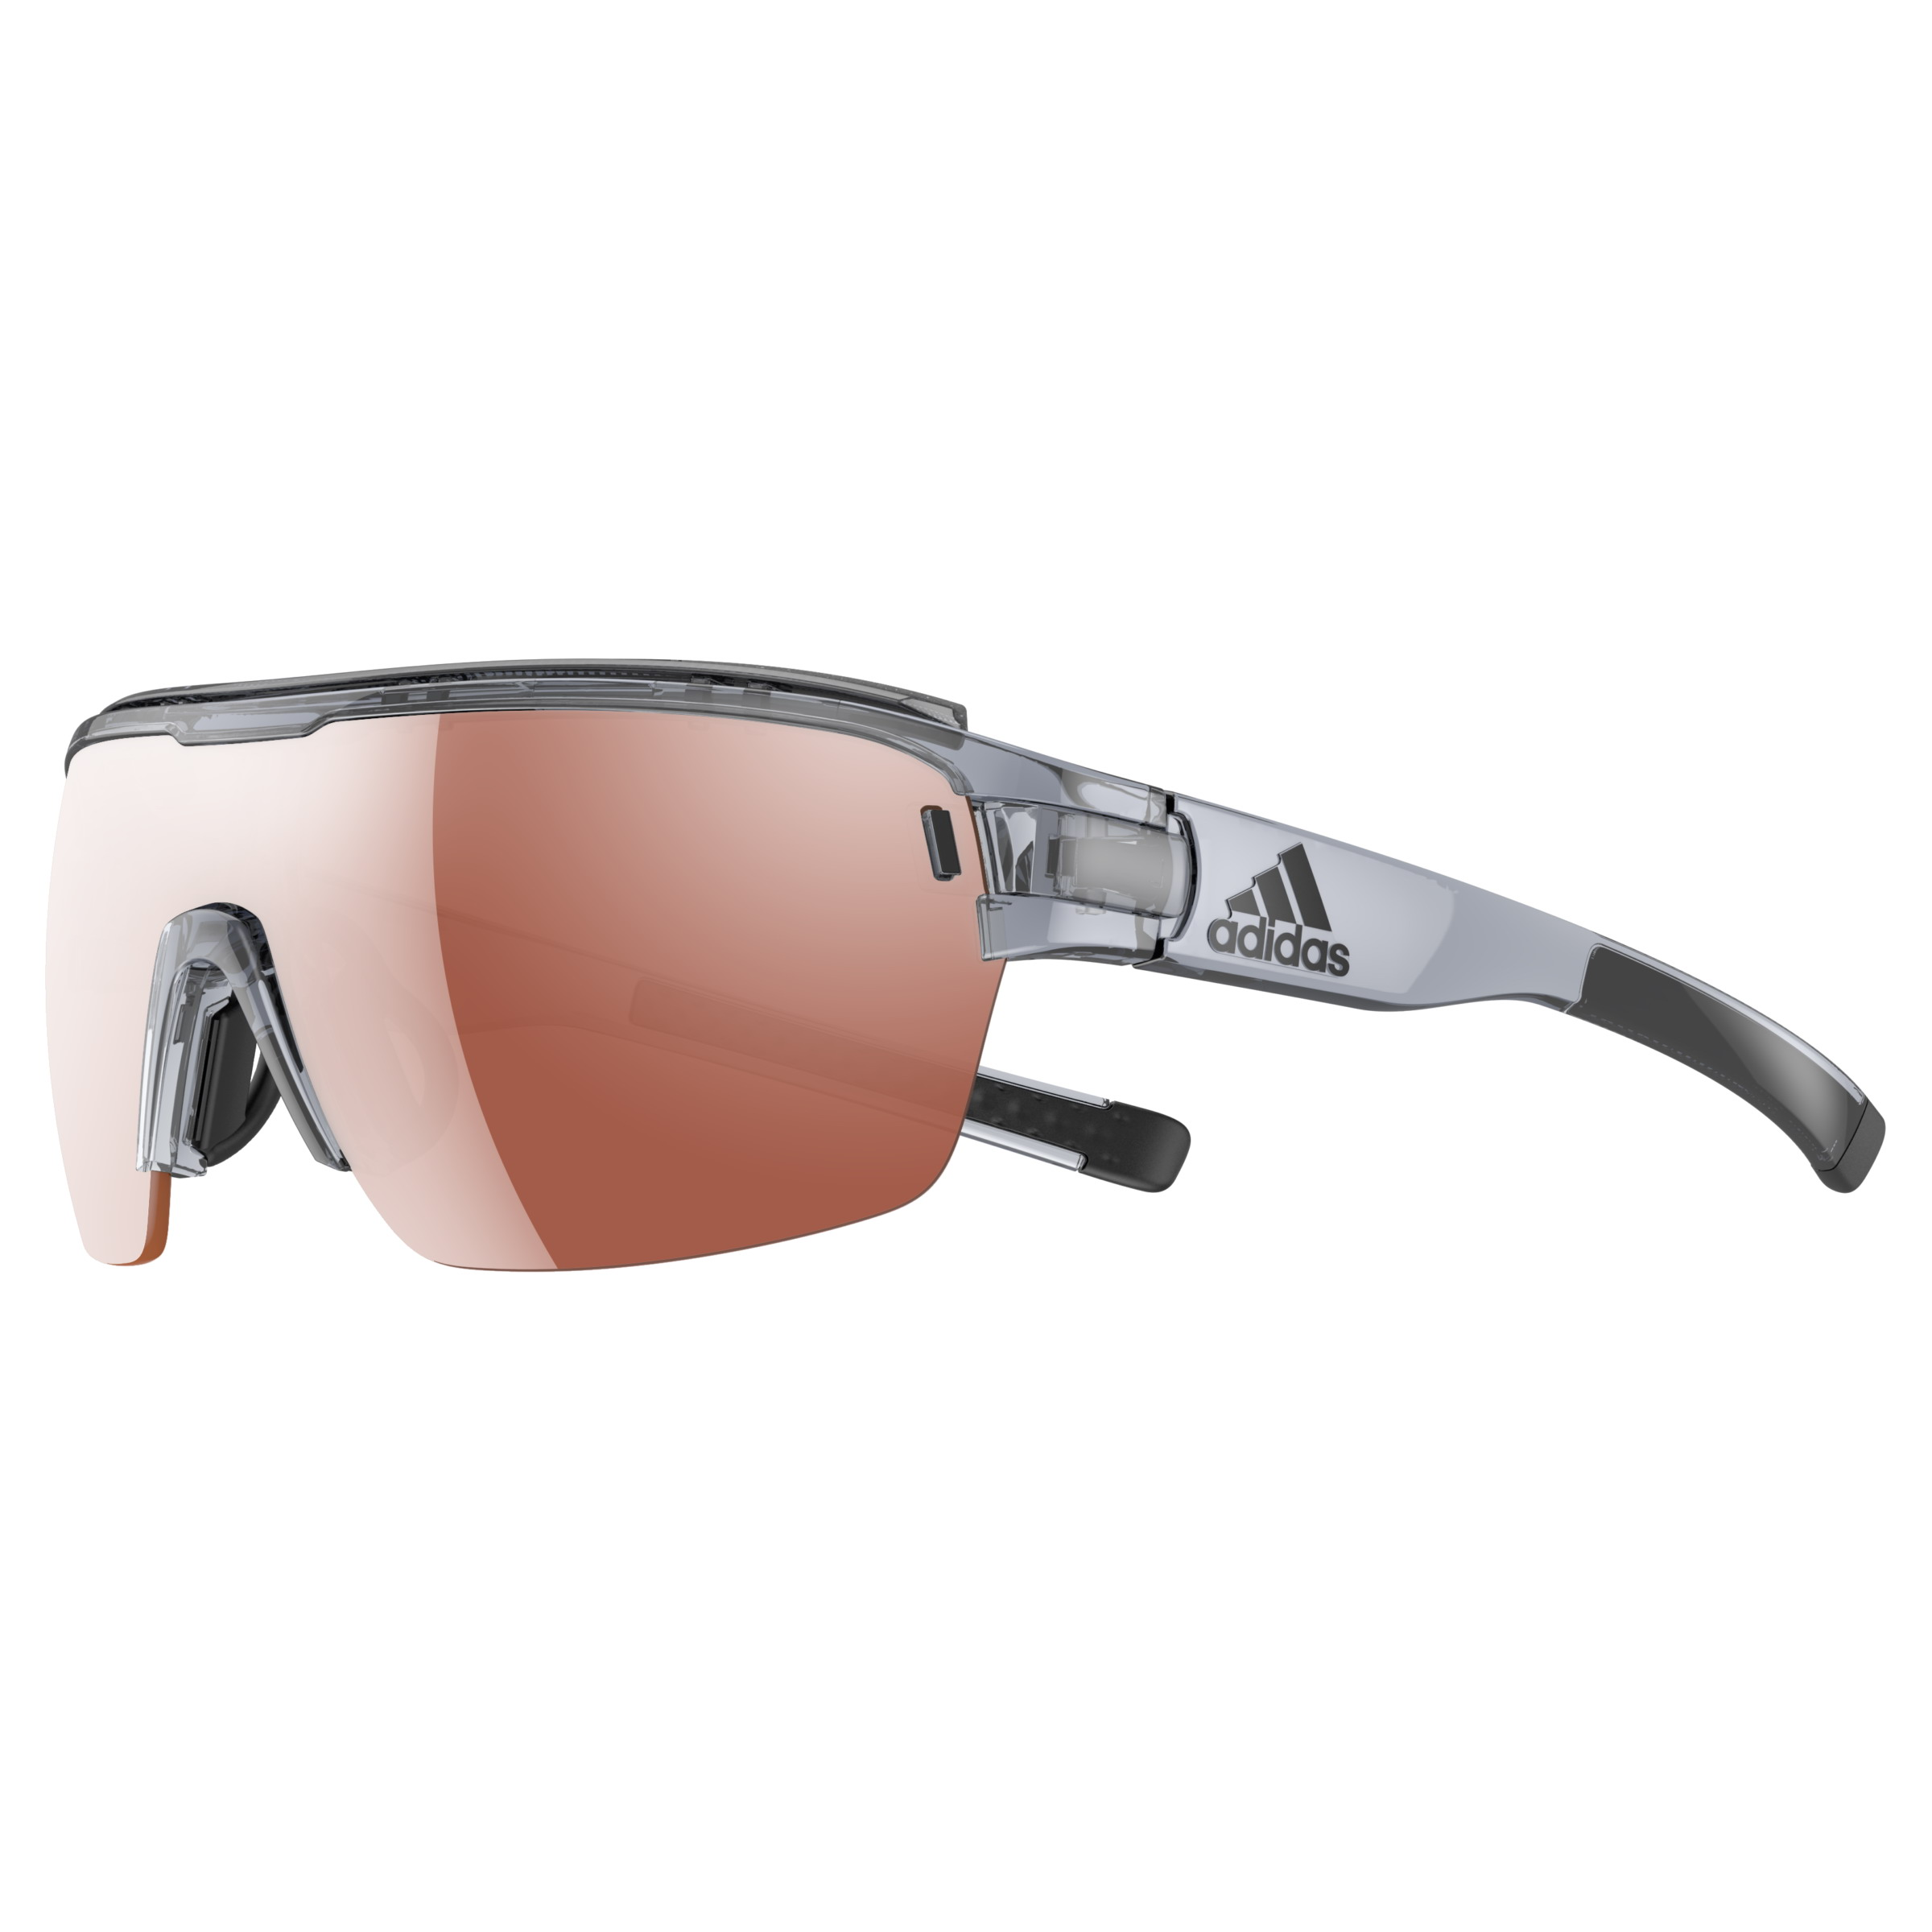 Adidas Brille ad05 ZONYK AERO Pro grey shiny 6600 LST Active silver (Large) skrKmOgQ5